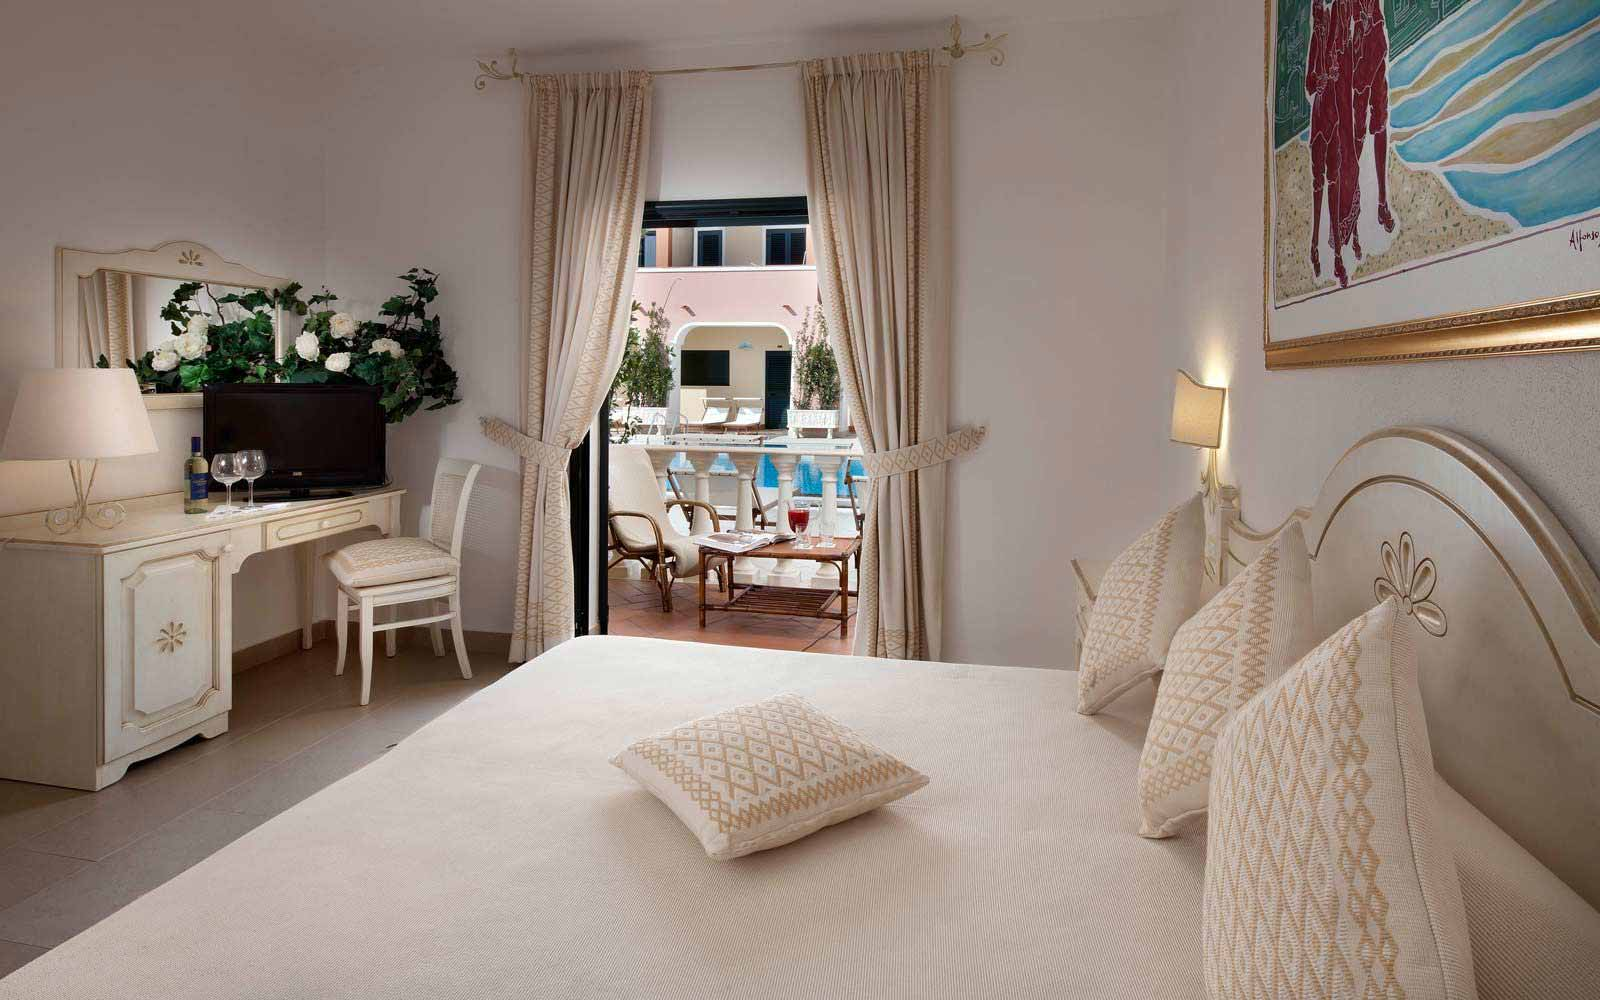 Deluxe room at Cala Ginepro Hotel Resort